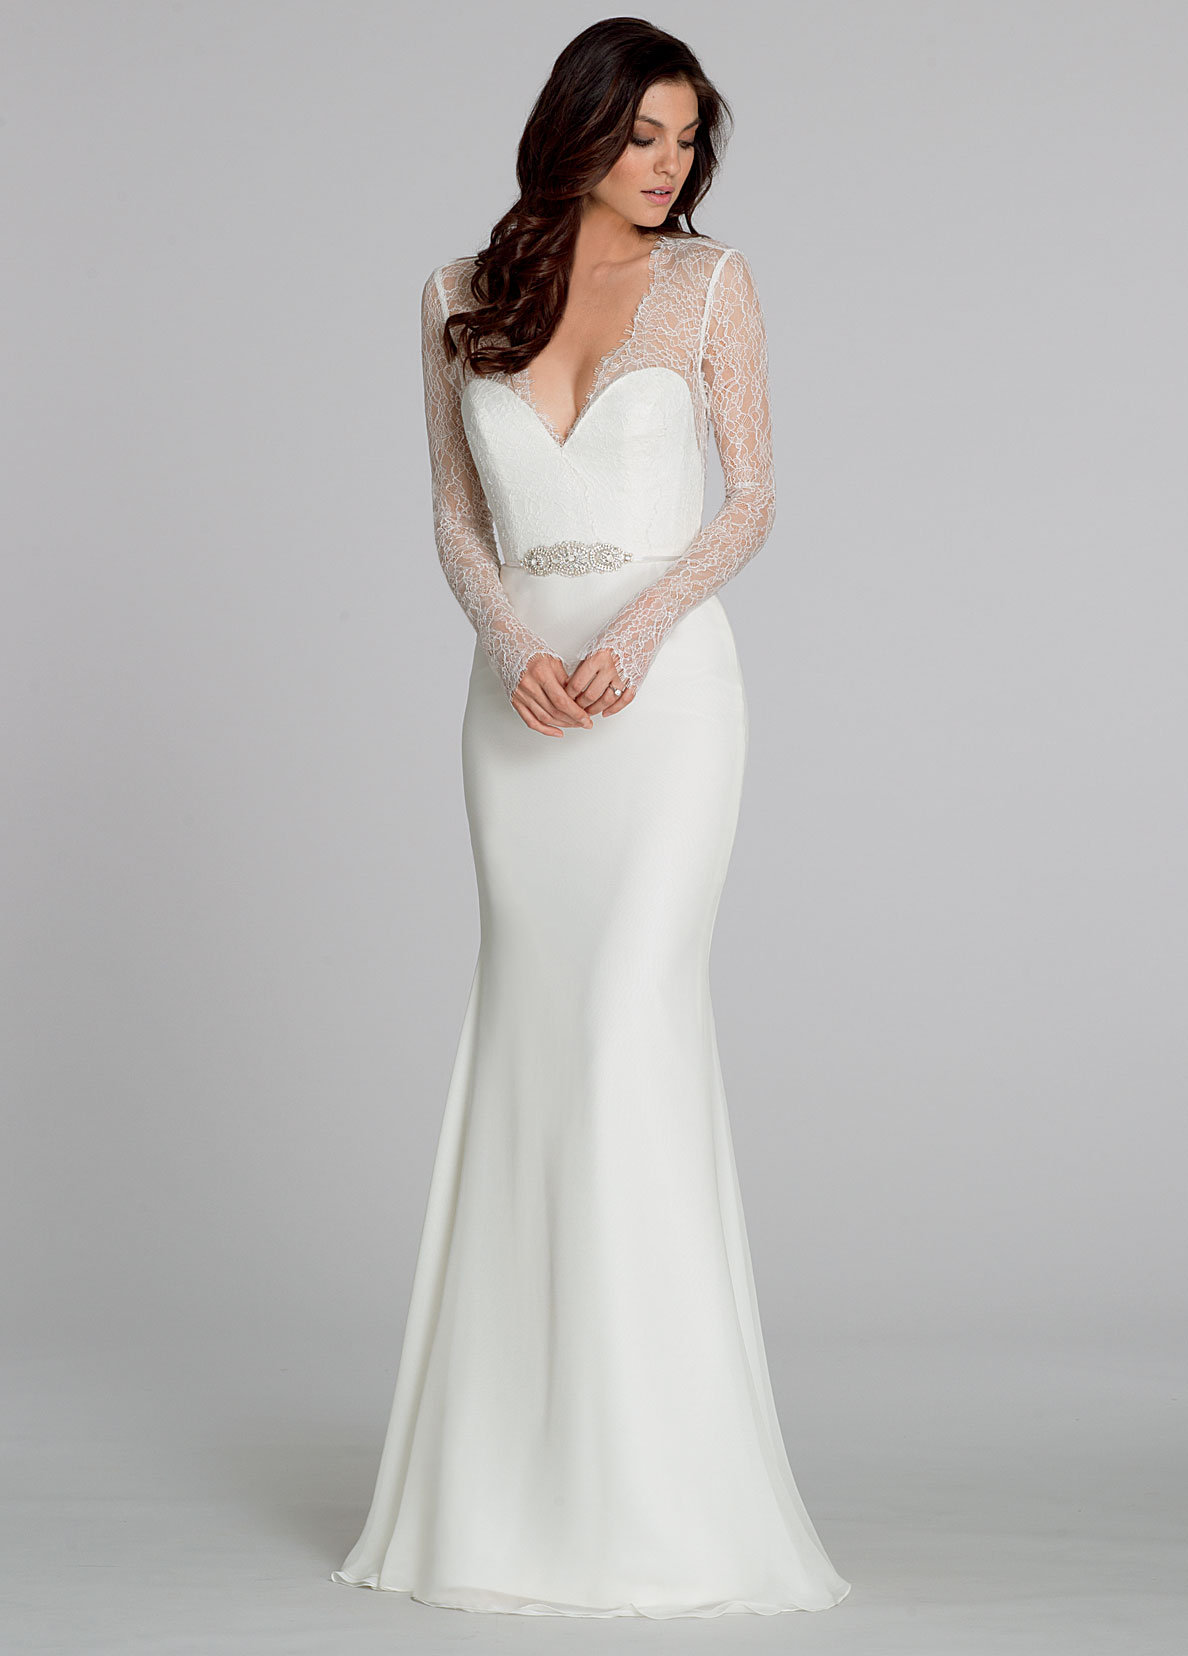 Bridal Gowns And Wedding Dresses By Jlm Couture Style 2551